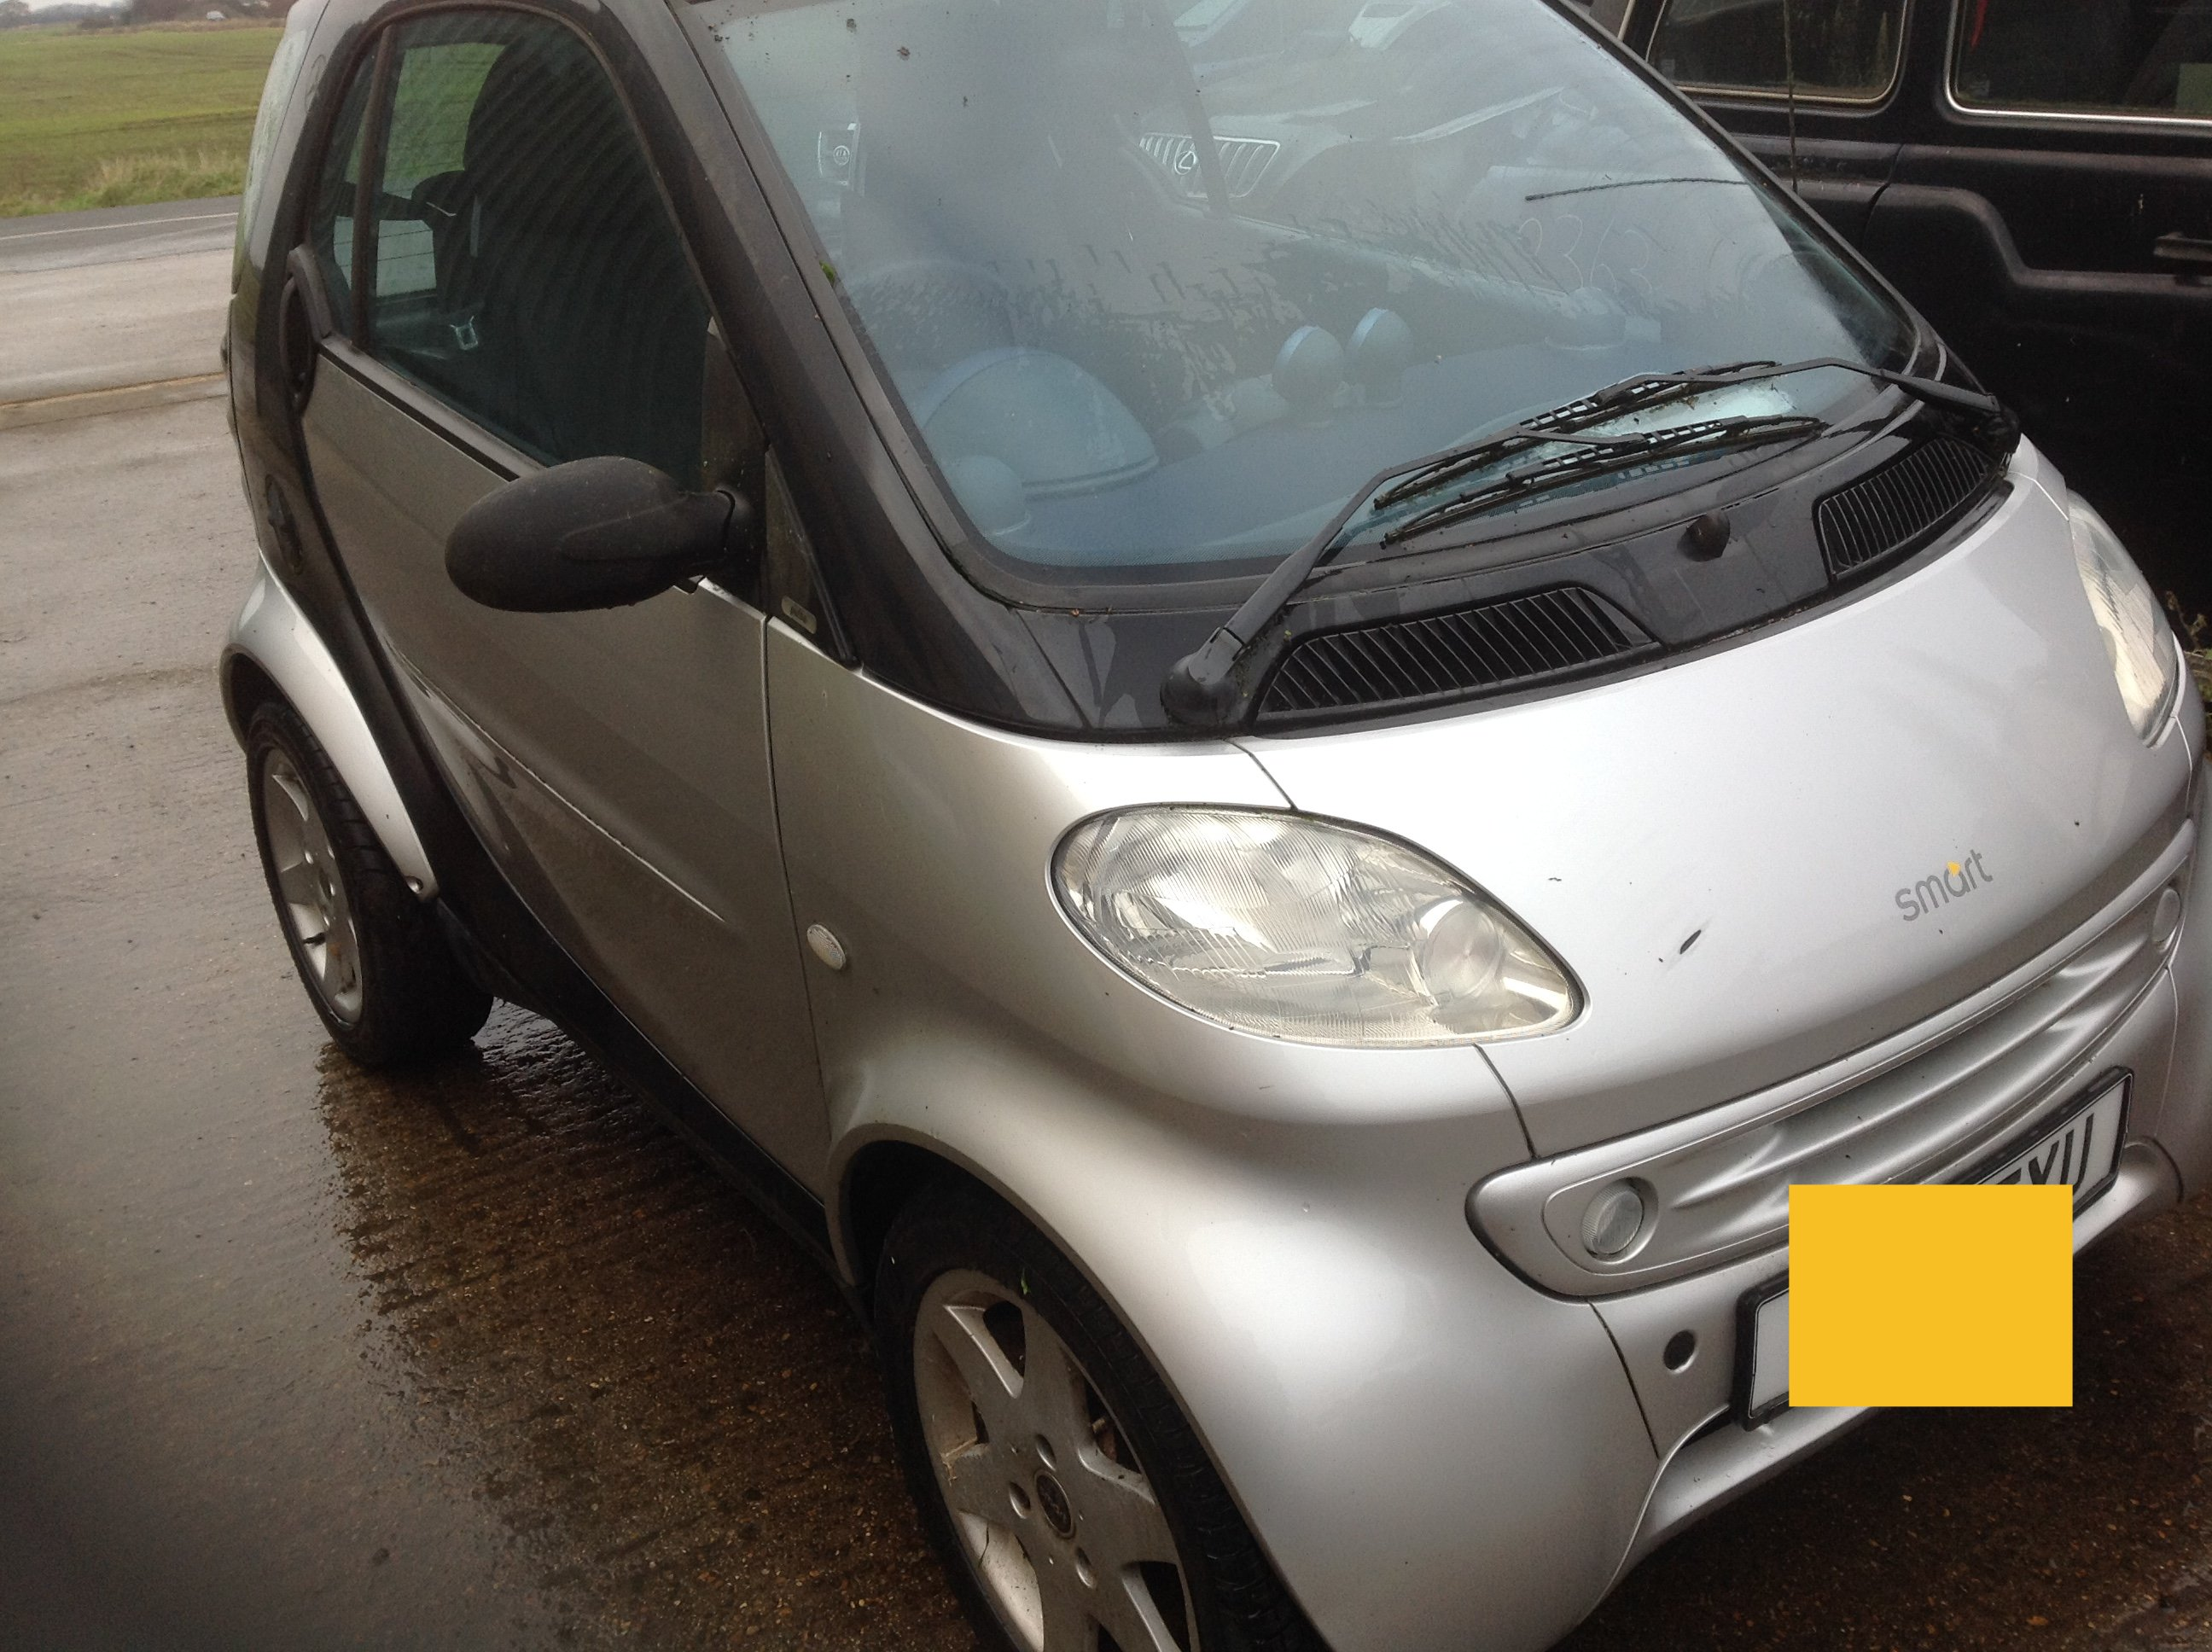 SMART FORTWO 2001 600cc